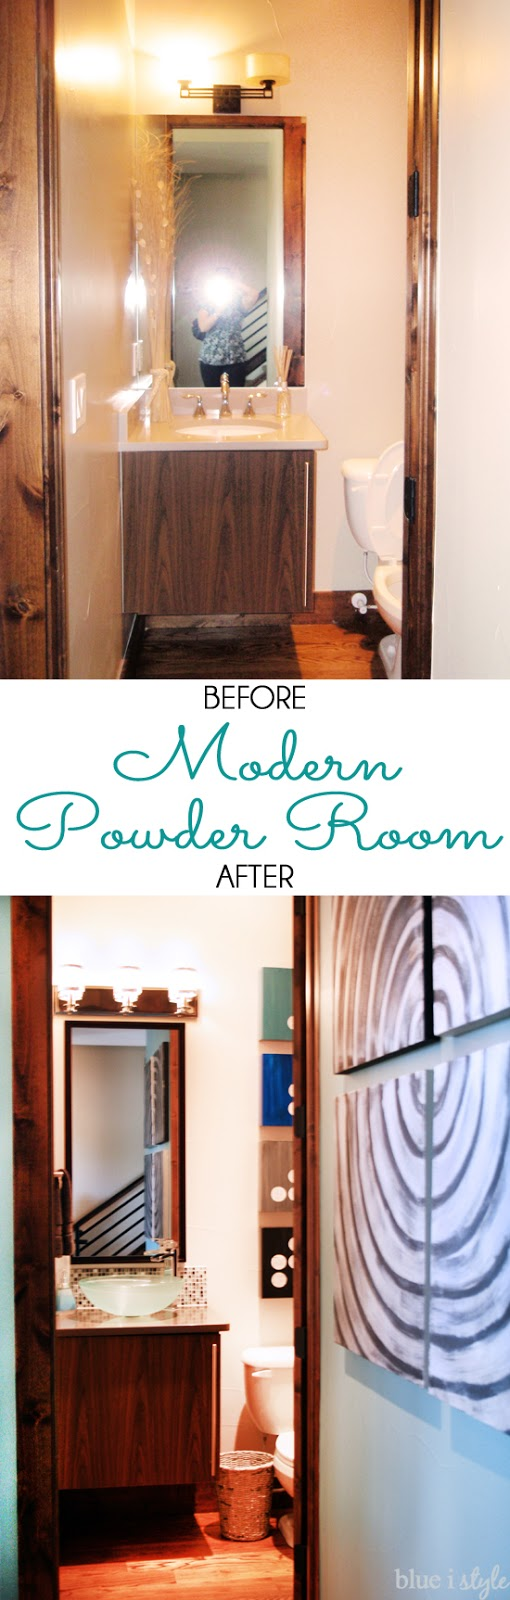 Modern Powder Room Makeover